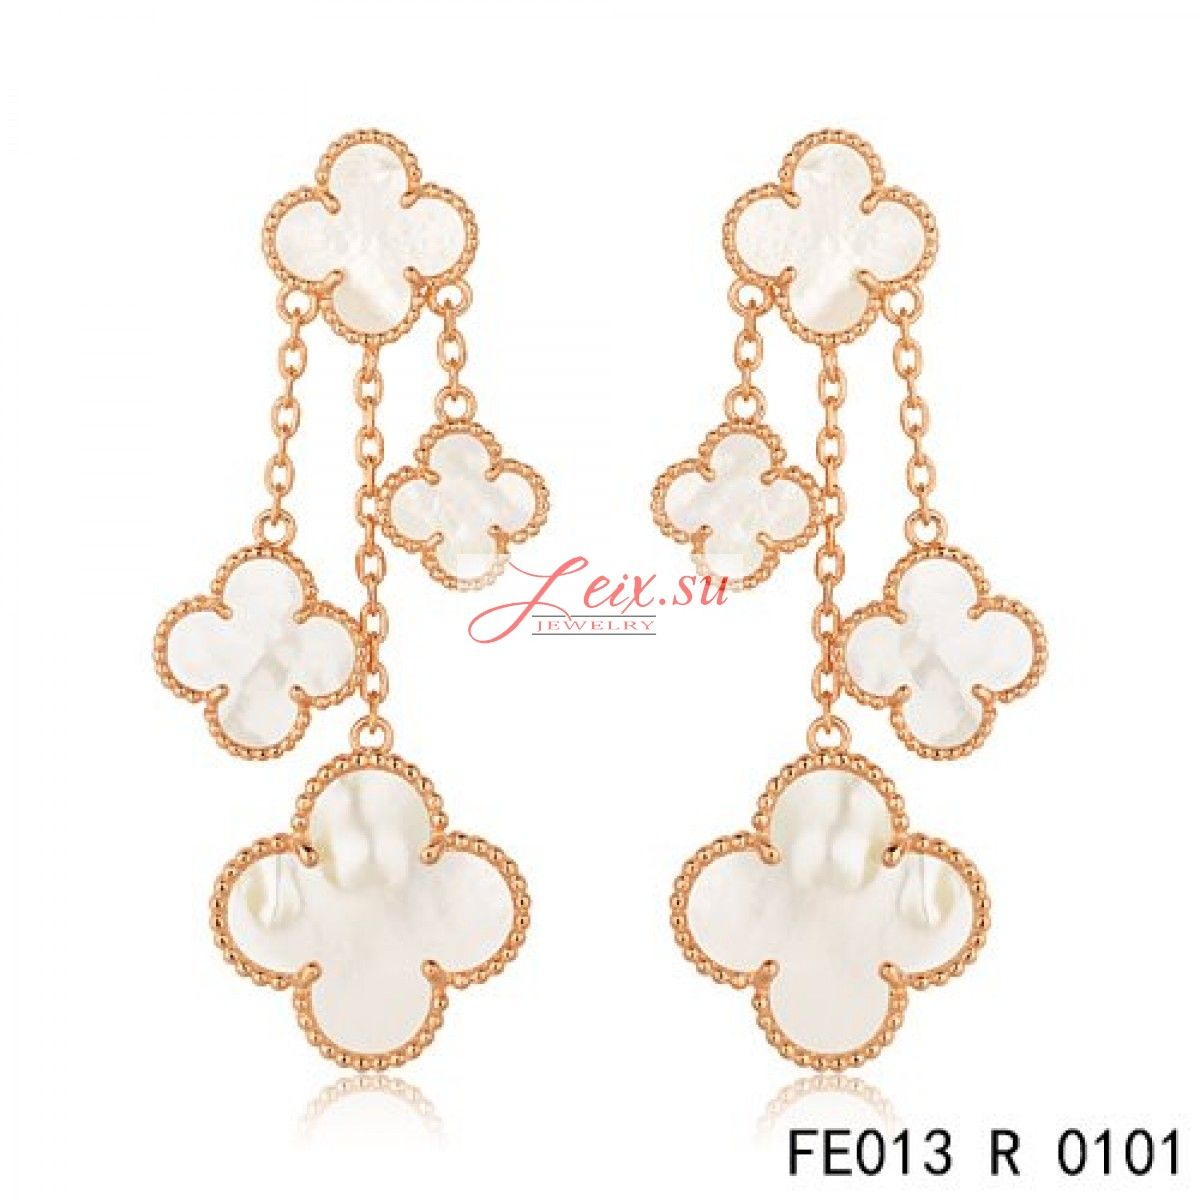 Van Cleef Arpels Replica Pink Gold Magic Alhambra Earrings White Mother Of Pearl 4 Motifs